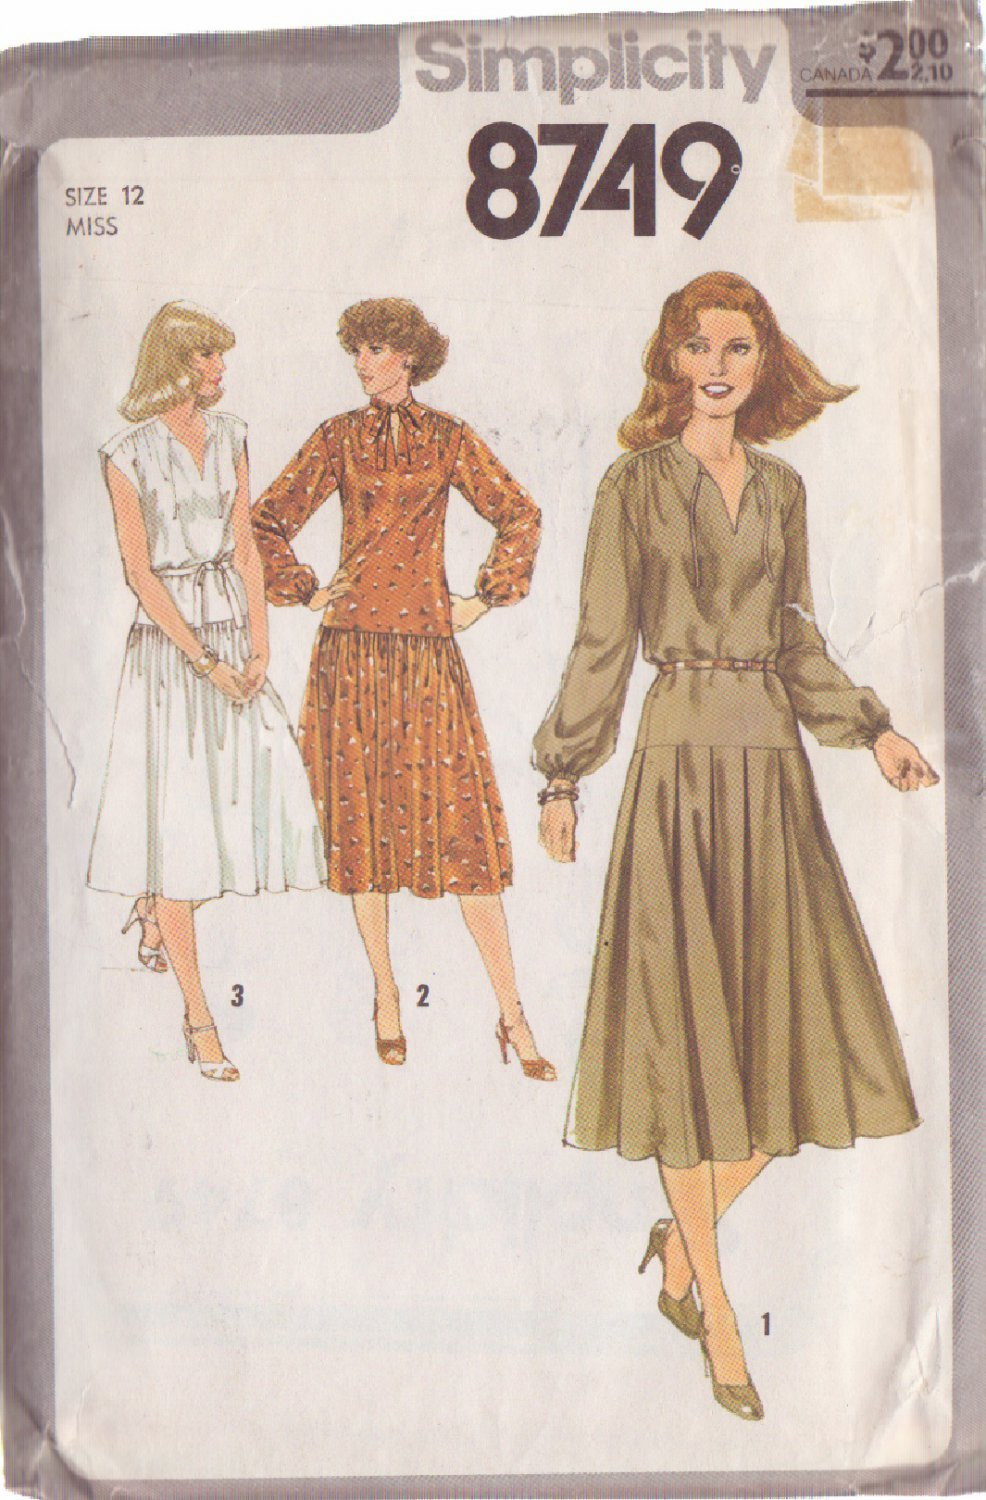 SIMPLICITY PATTERN 8749 SIZE 12  MISSES' PULLOVER DRESS IN 3 VARIATIONS